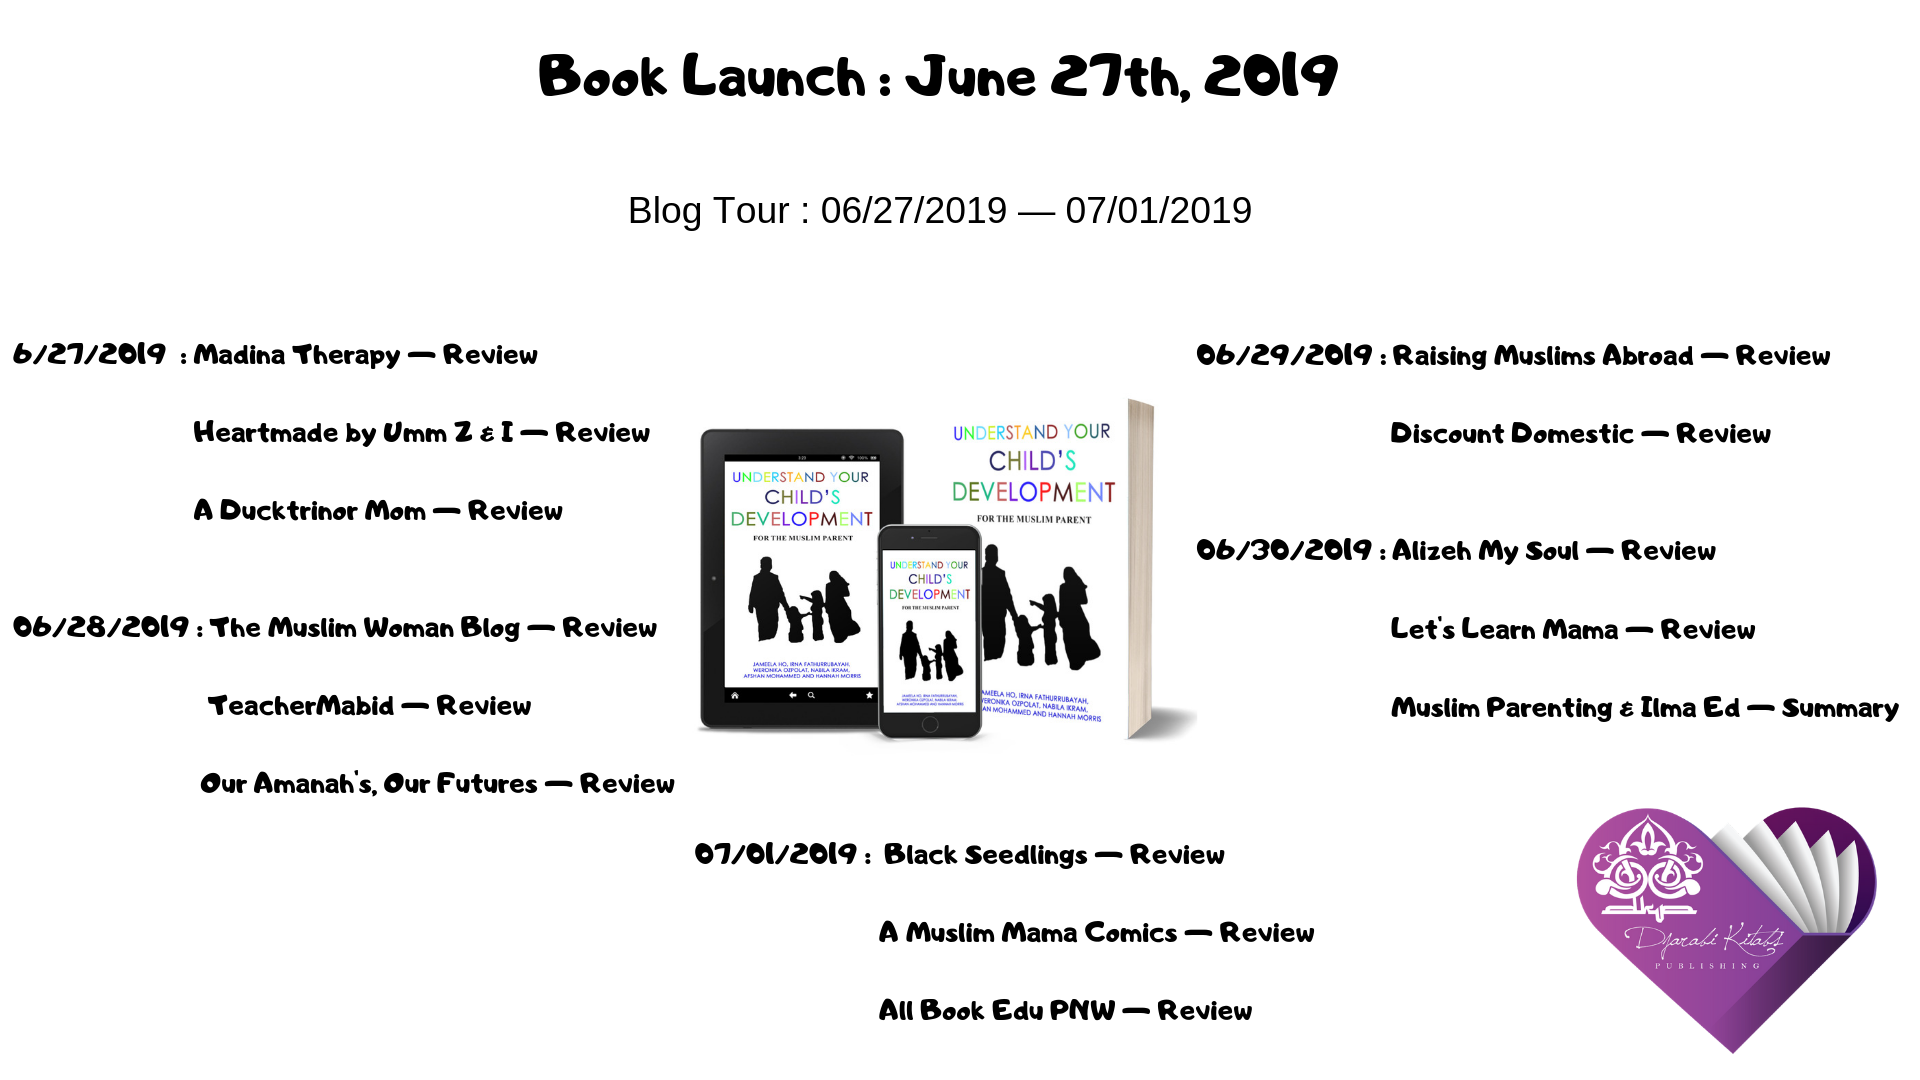 UYCD New Release! Book Launch and Blog Tour 6 26 19.png